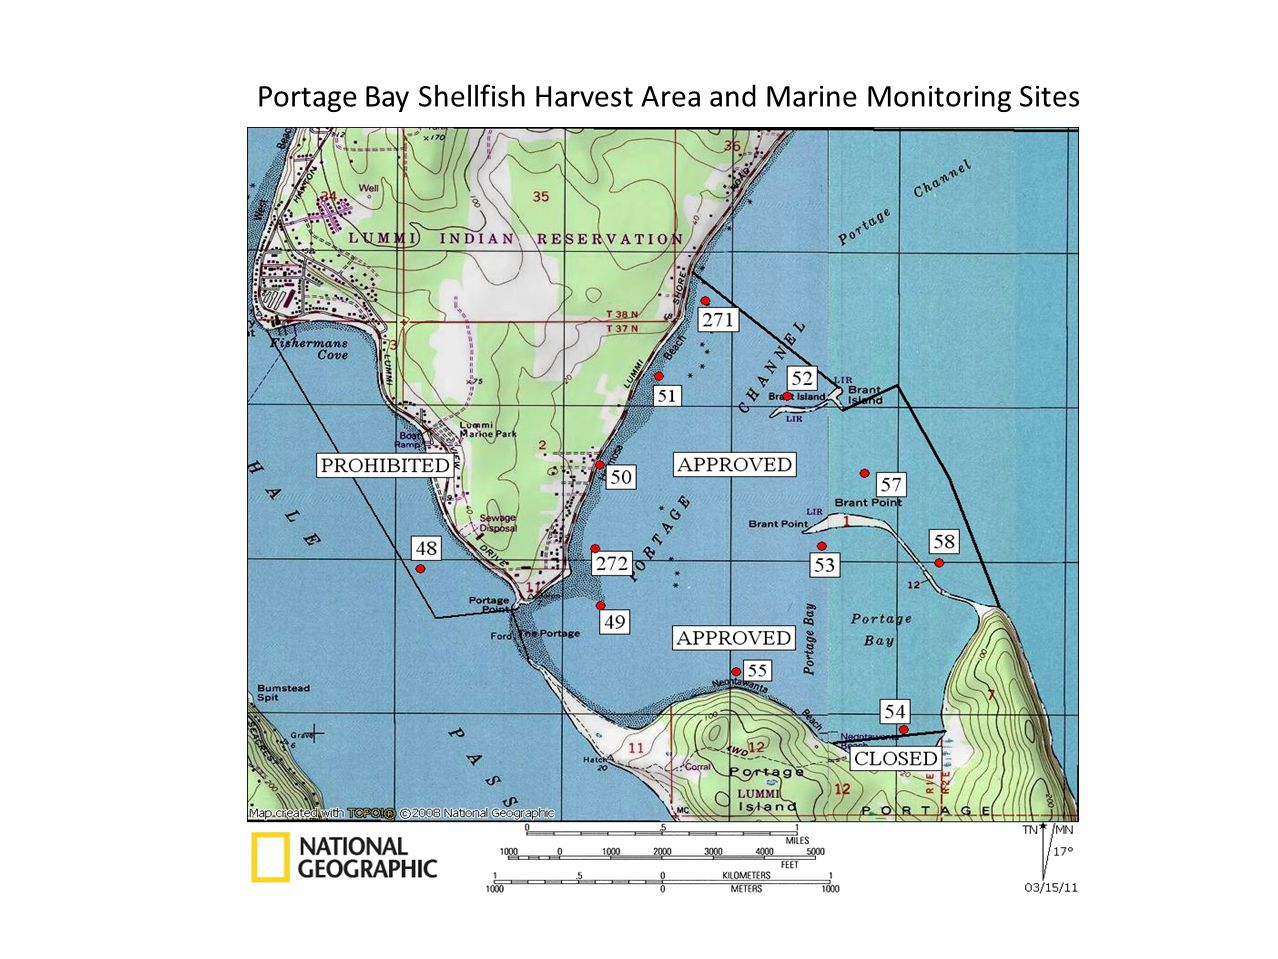 Portage Bay Shellfish Harvest Area and Marine Monitoring Sites